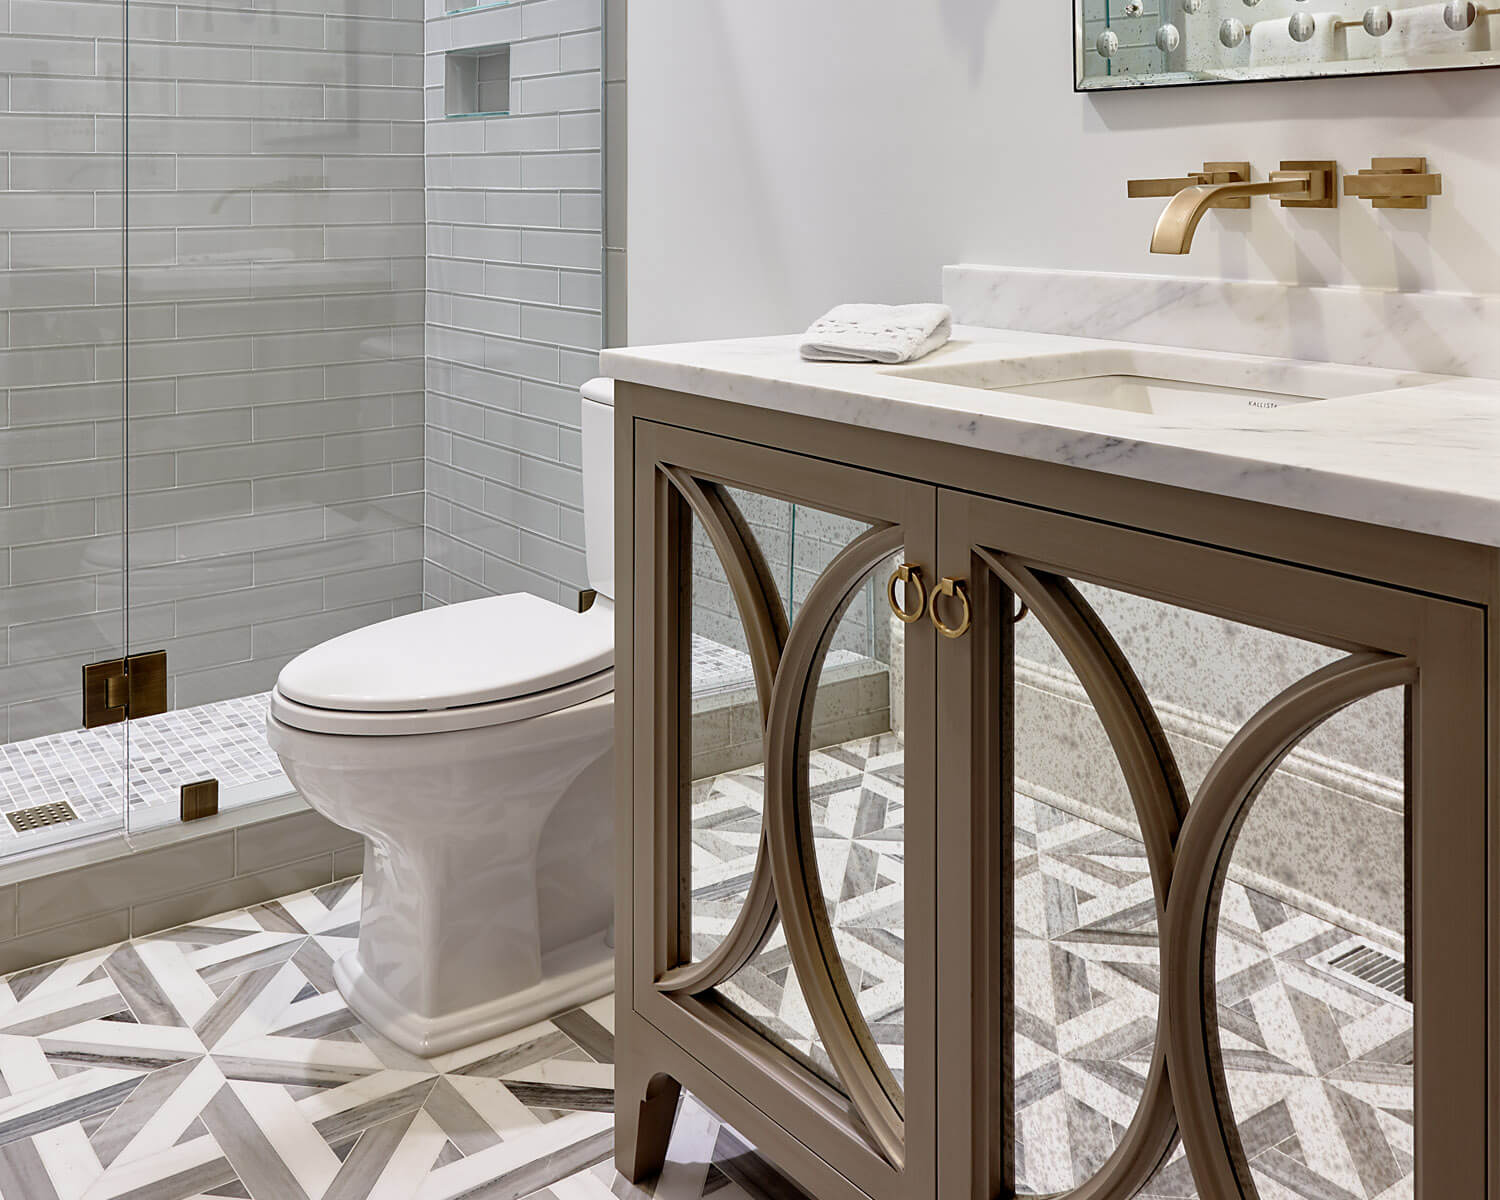 Glamorous Design Details For Your Bathroom Cabinetry